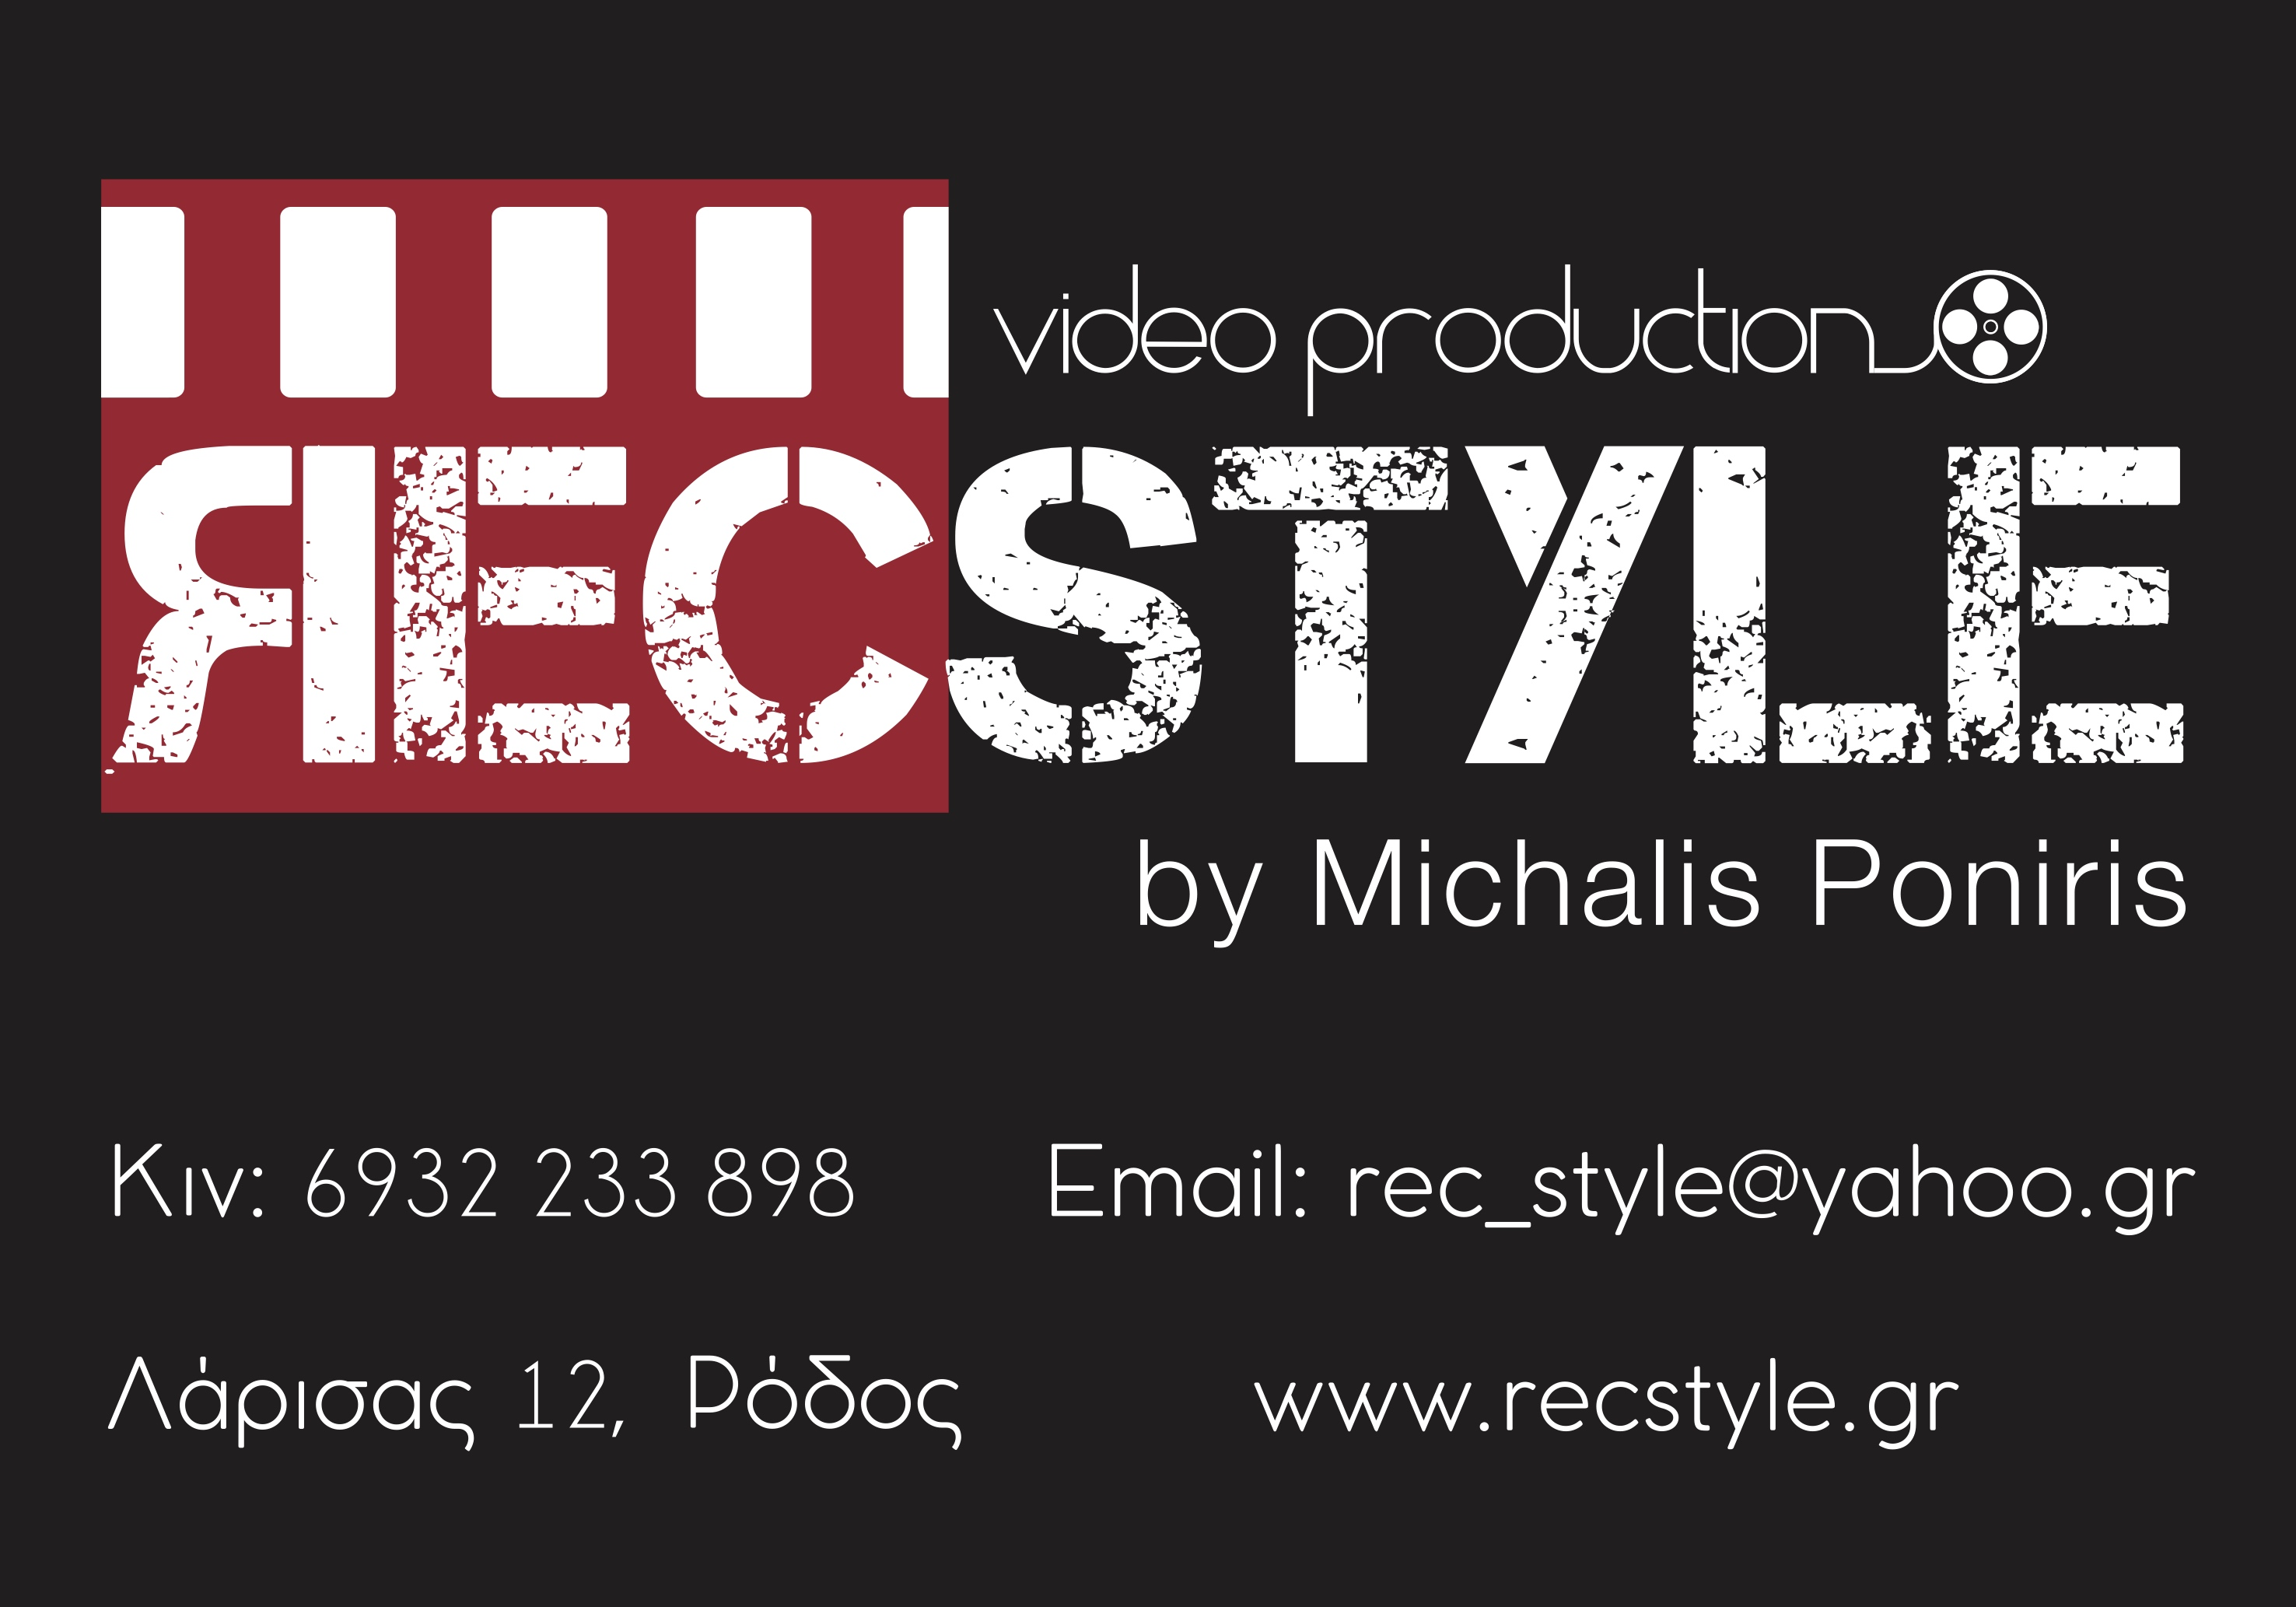 Rec Style Veddings & events video productions - Μιχάλης Πονίρης, Βίντε